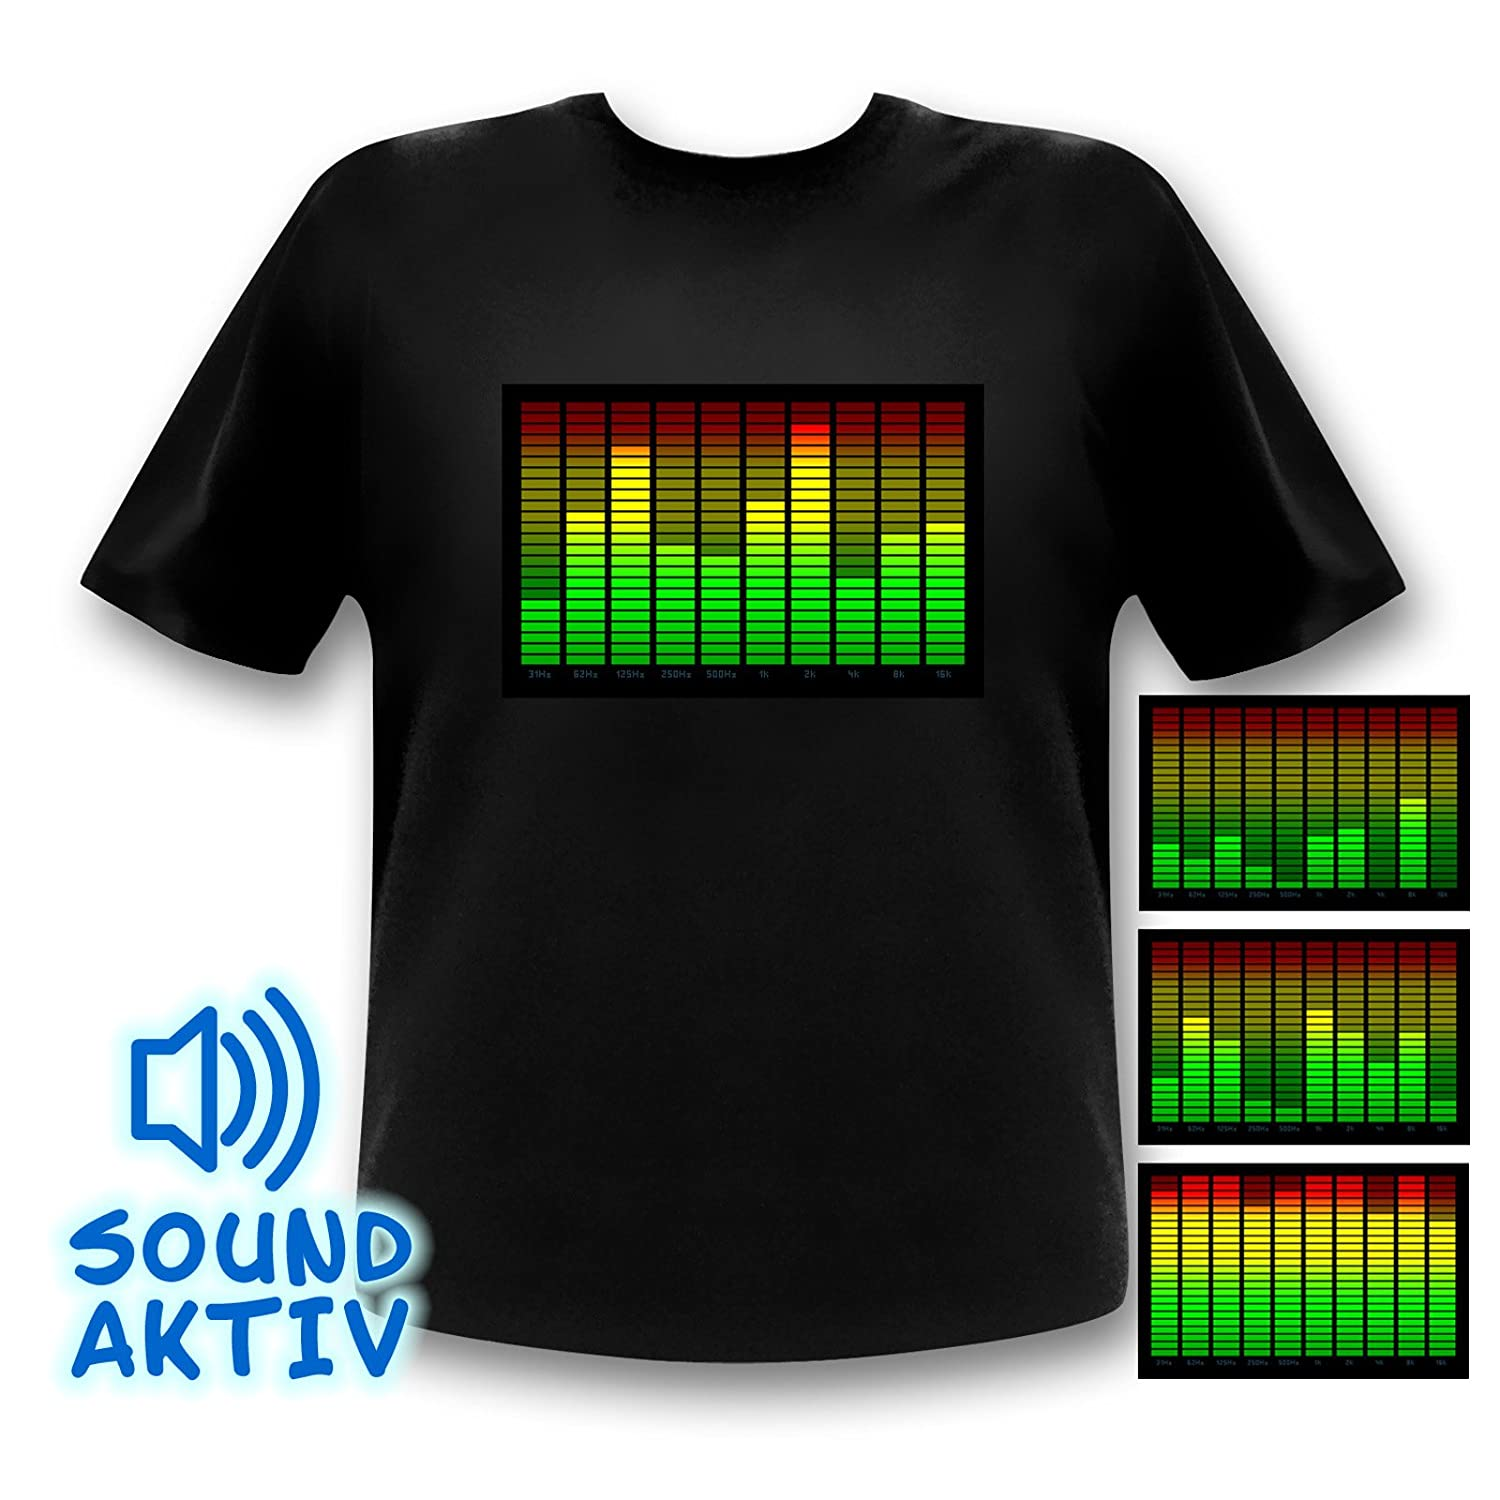 Sound Activated 10 Channel Led Equalizer T Shirt Light Up Men39s Digital Circuit Board Tshirt 2xlarge Blue Clothing Sports Outdoors